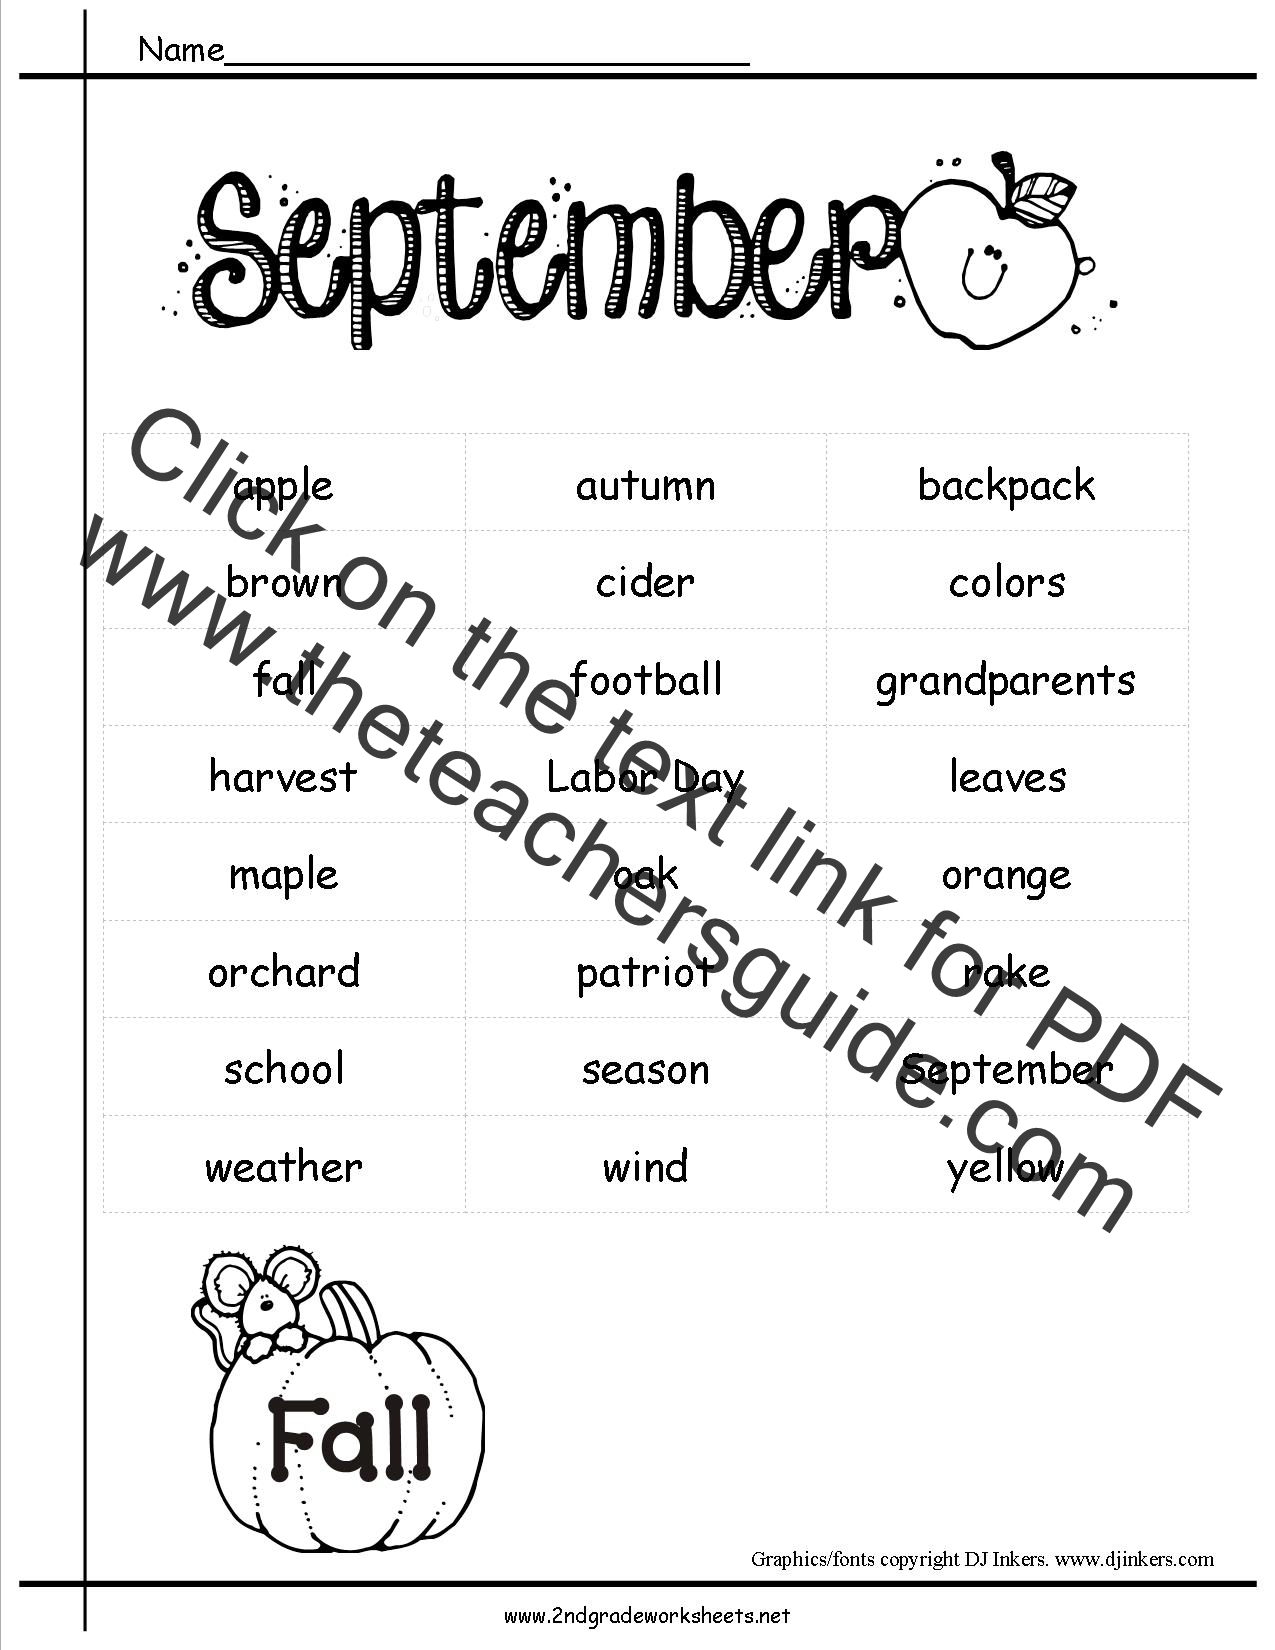 september holidays  themes  lesson plans  printouts  and crafts